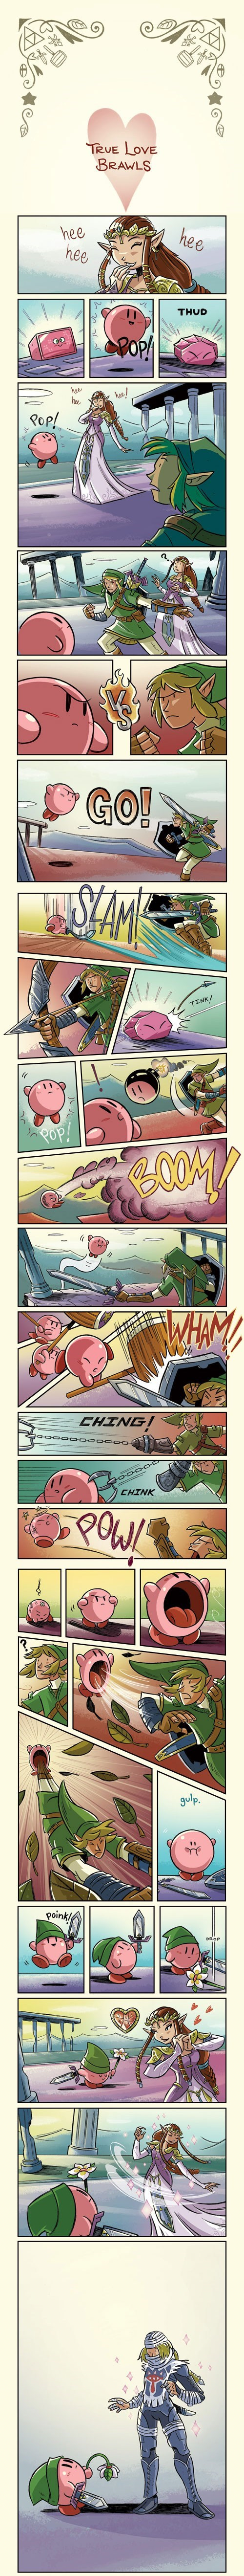 true love super smash bros kirby zelda web comics - 8235689984